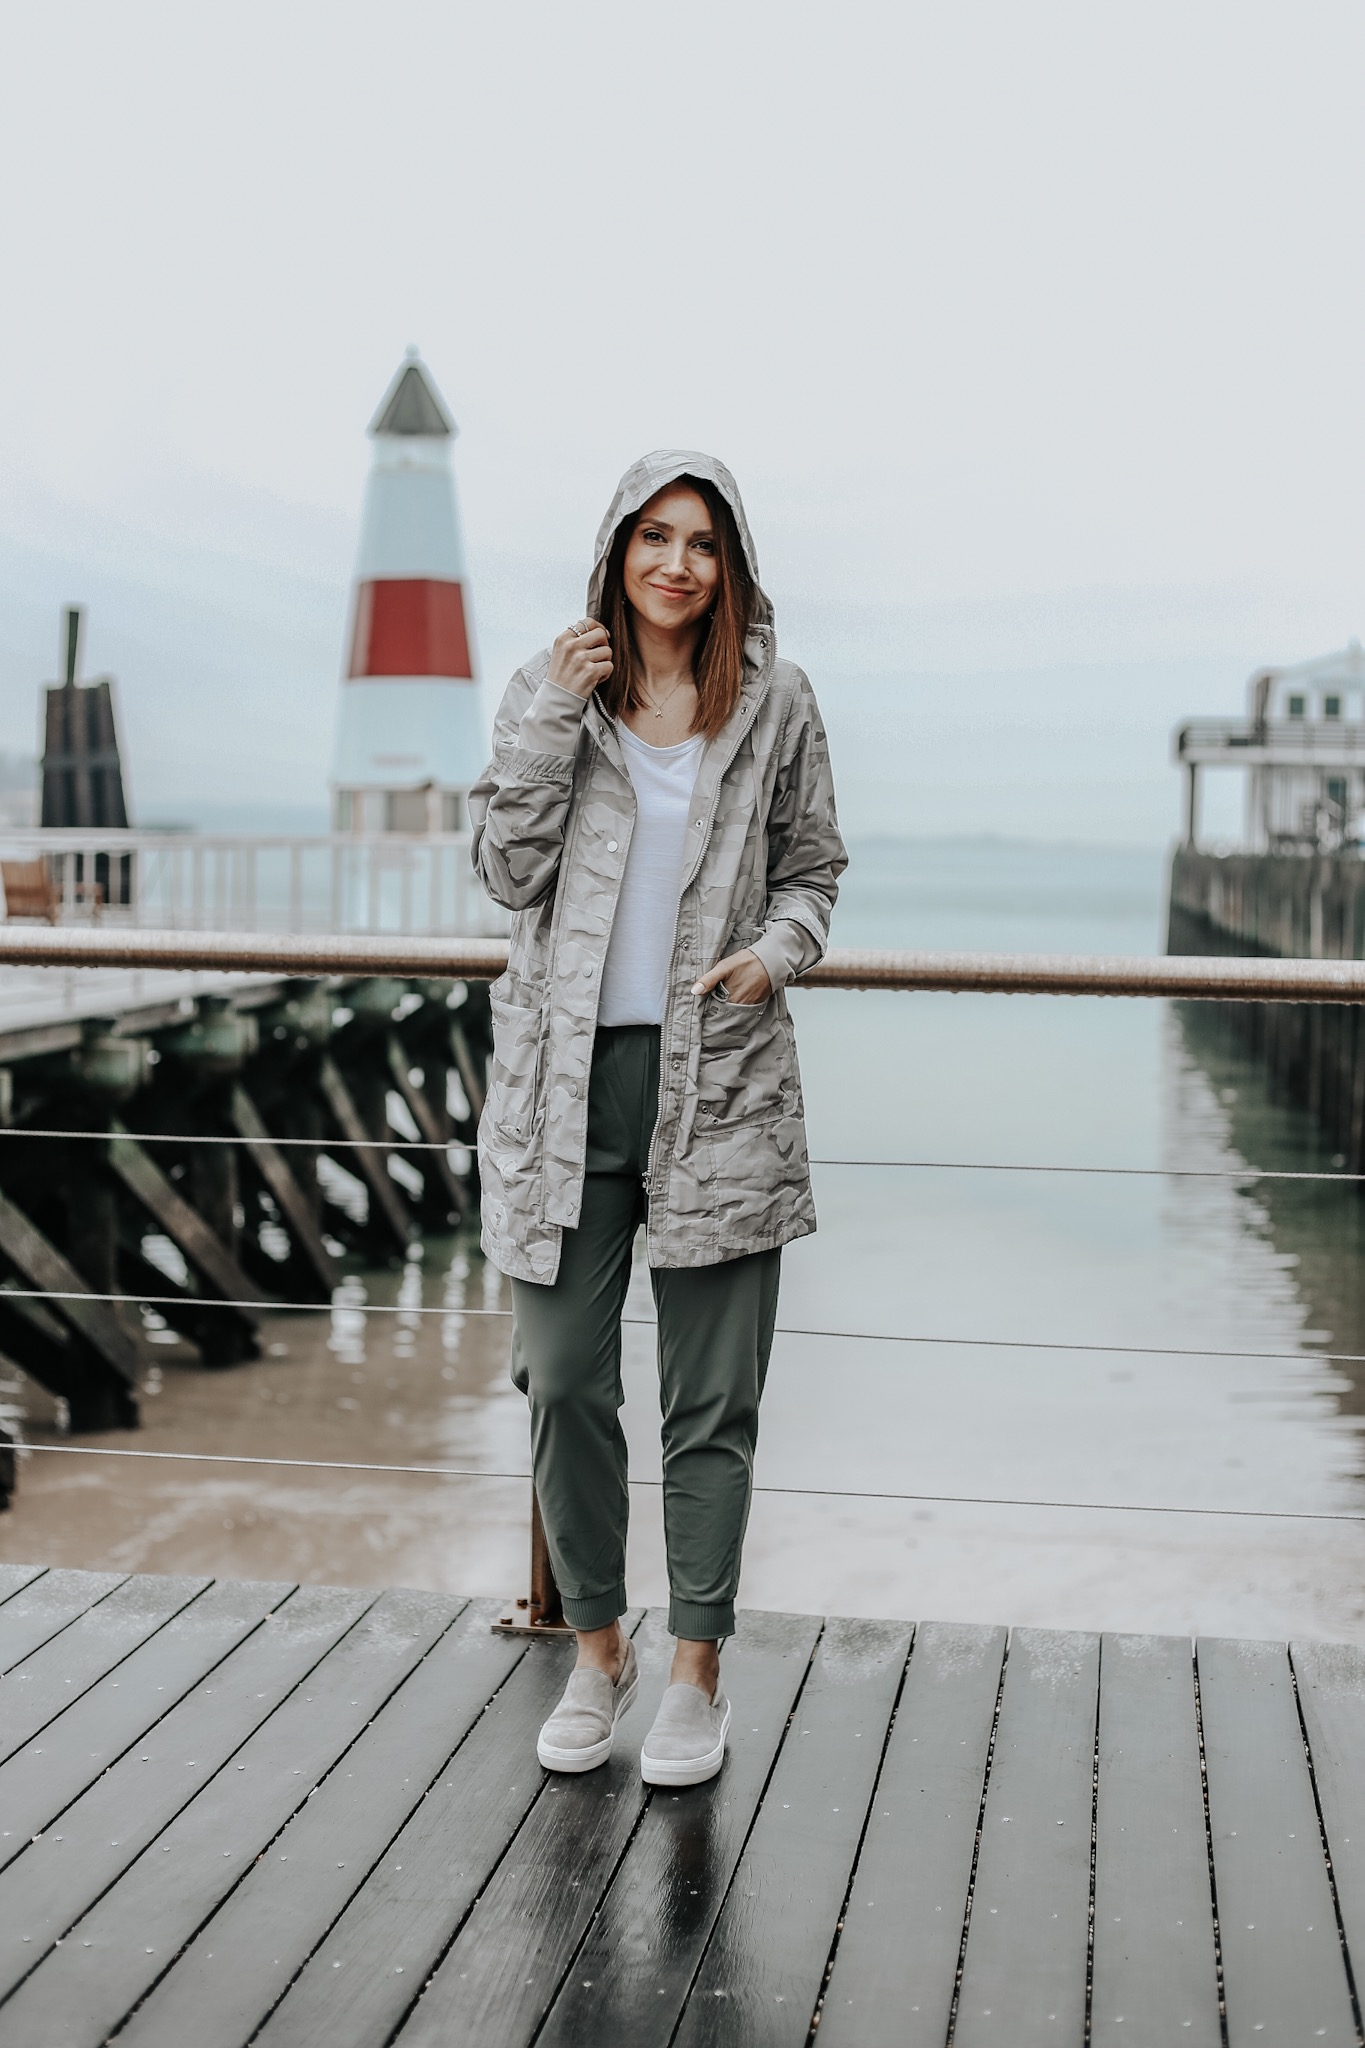 The Rain Jacket You Need For Spring & More New Arrivals